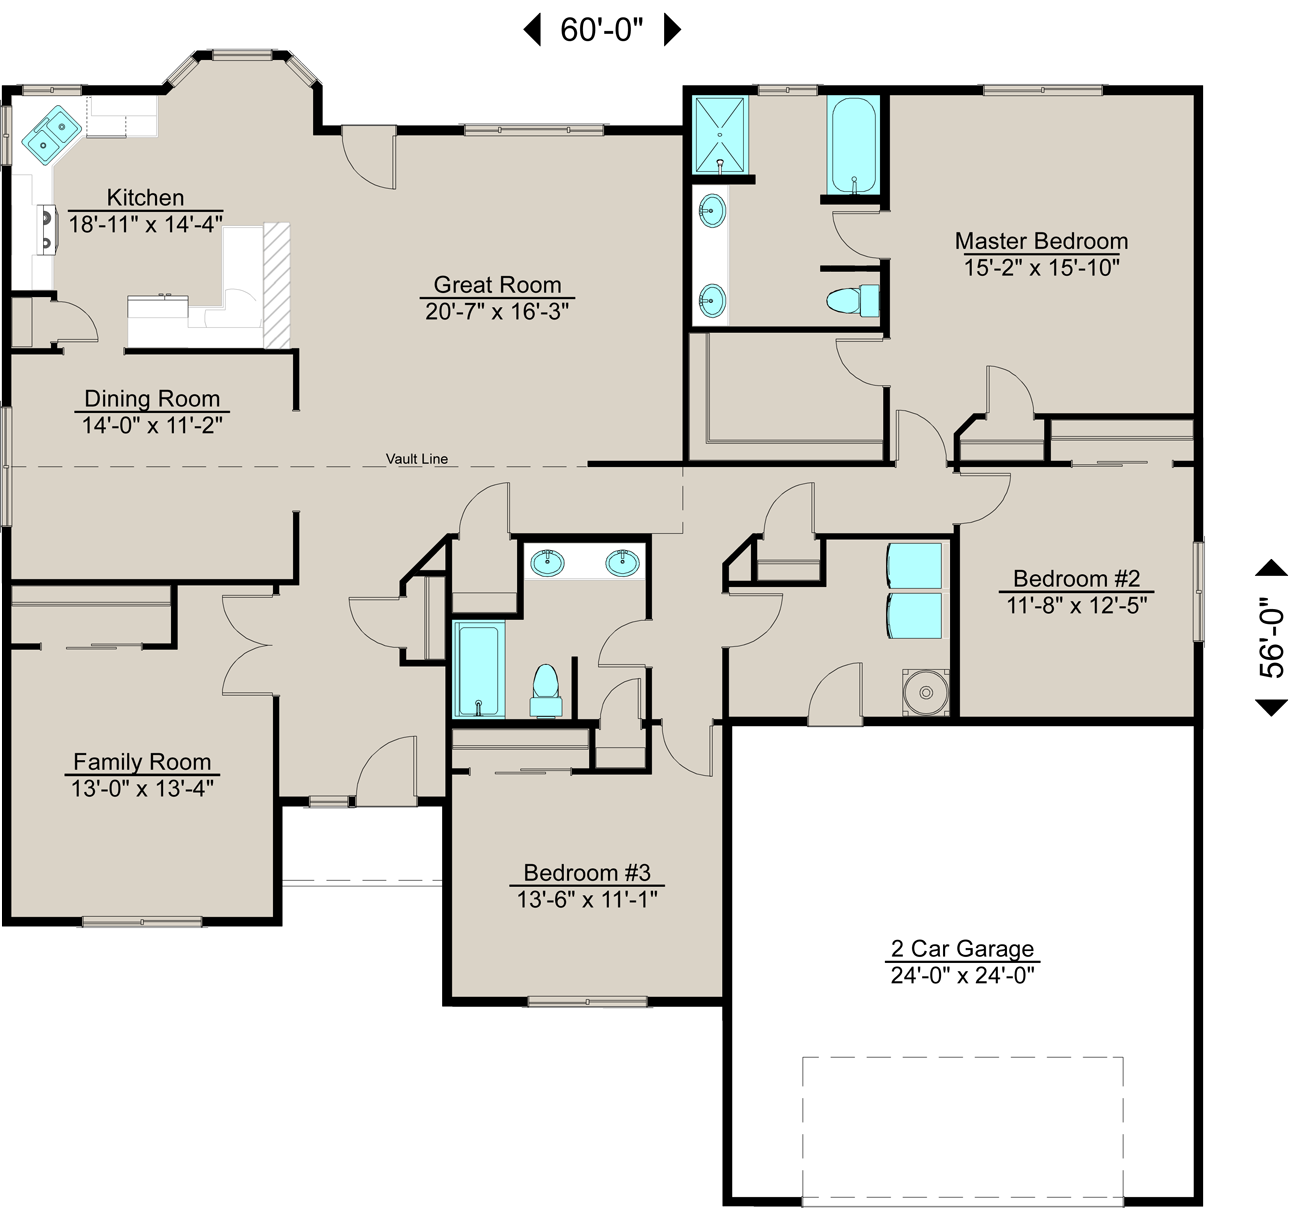 2269 sq ft get rid of dining room and change living room to den lexar homes 2269 floor plan